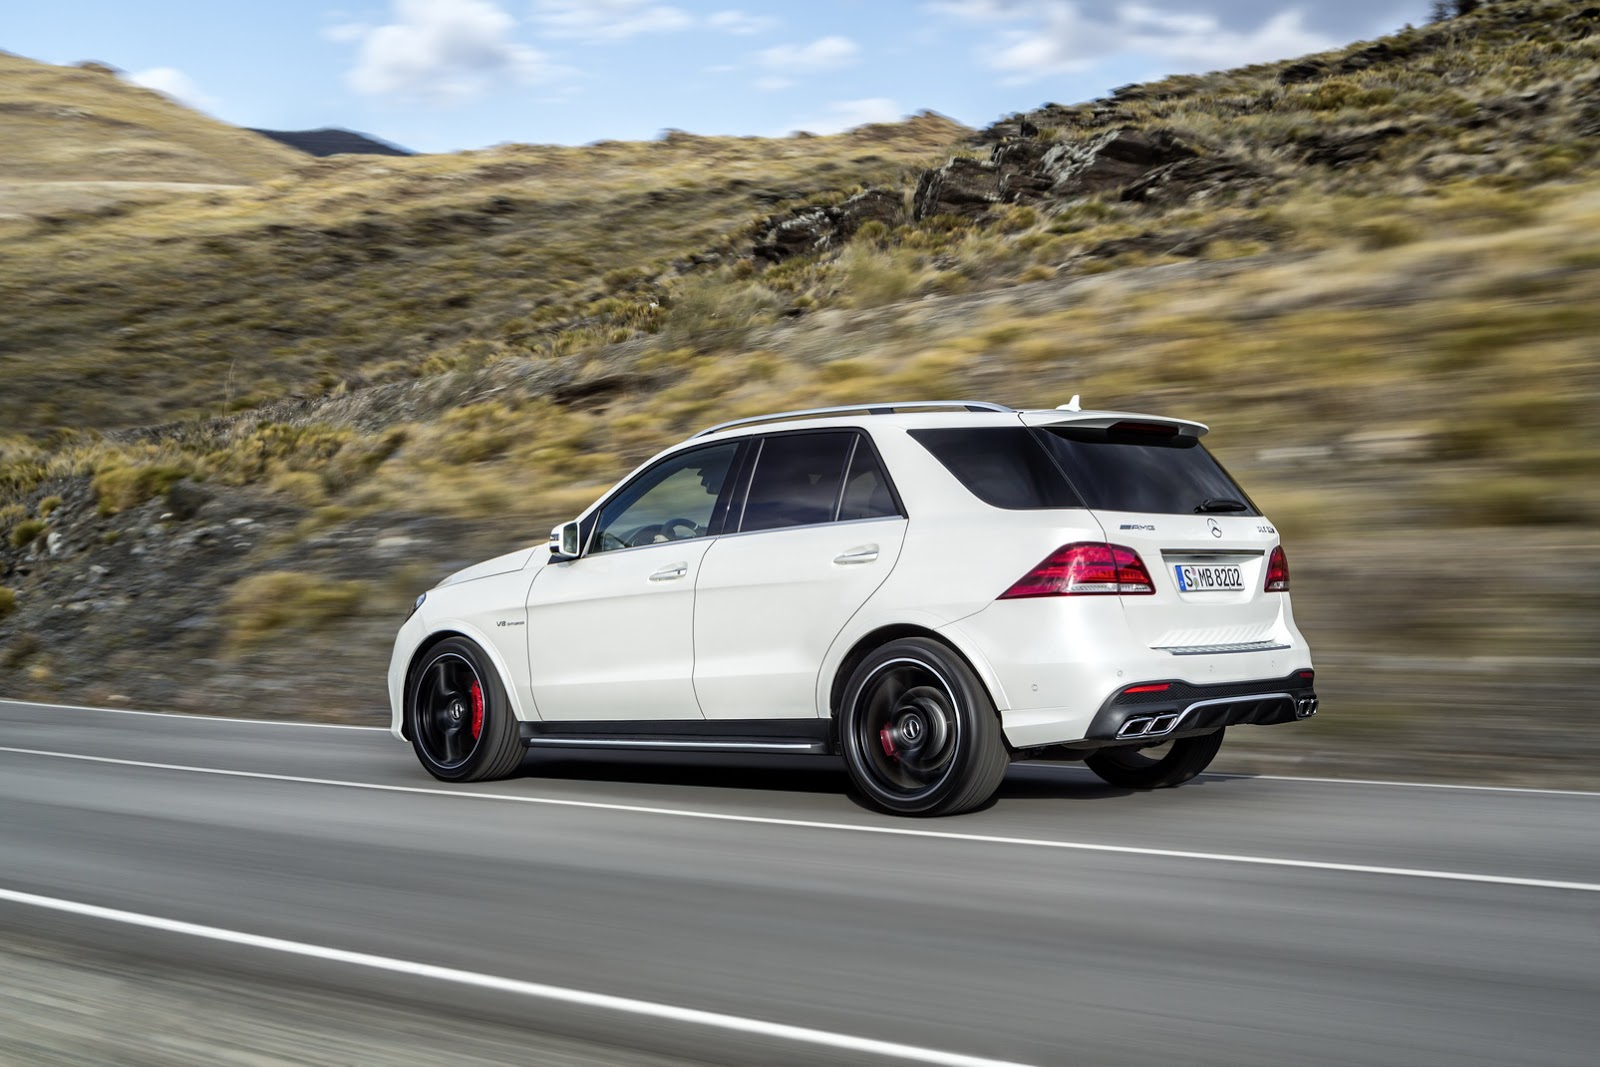 Mercedes benz 2016 gle 300d specs price release date for Mercedes benz gle 300d review